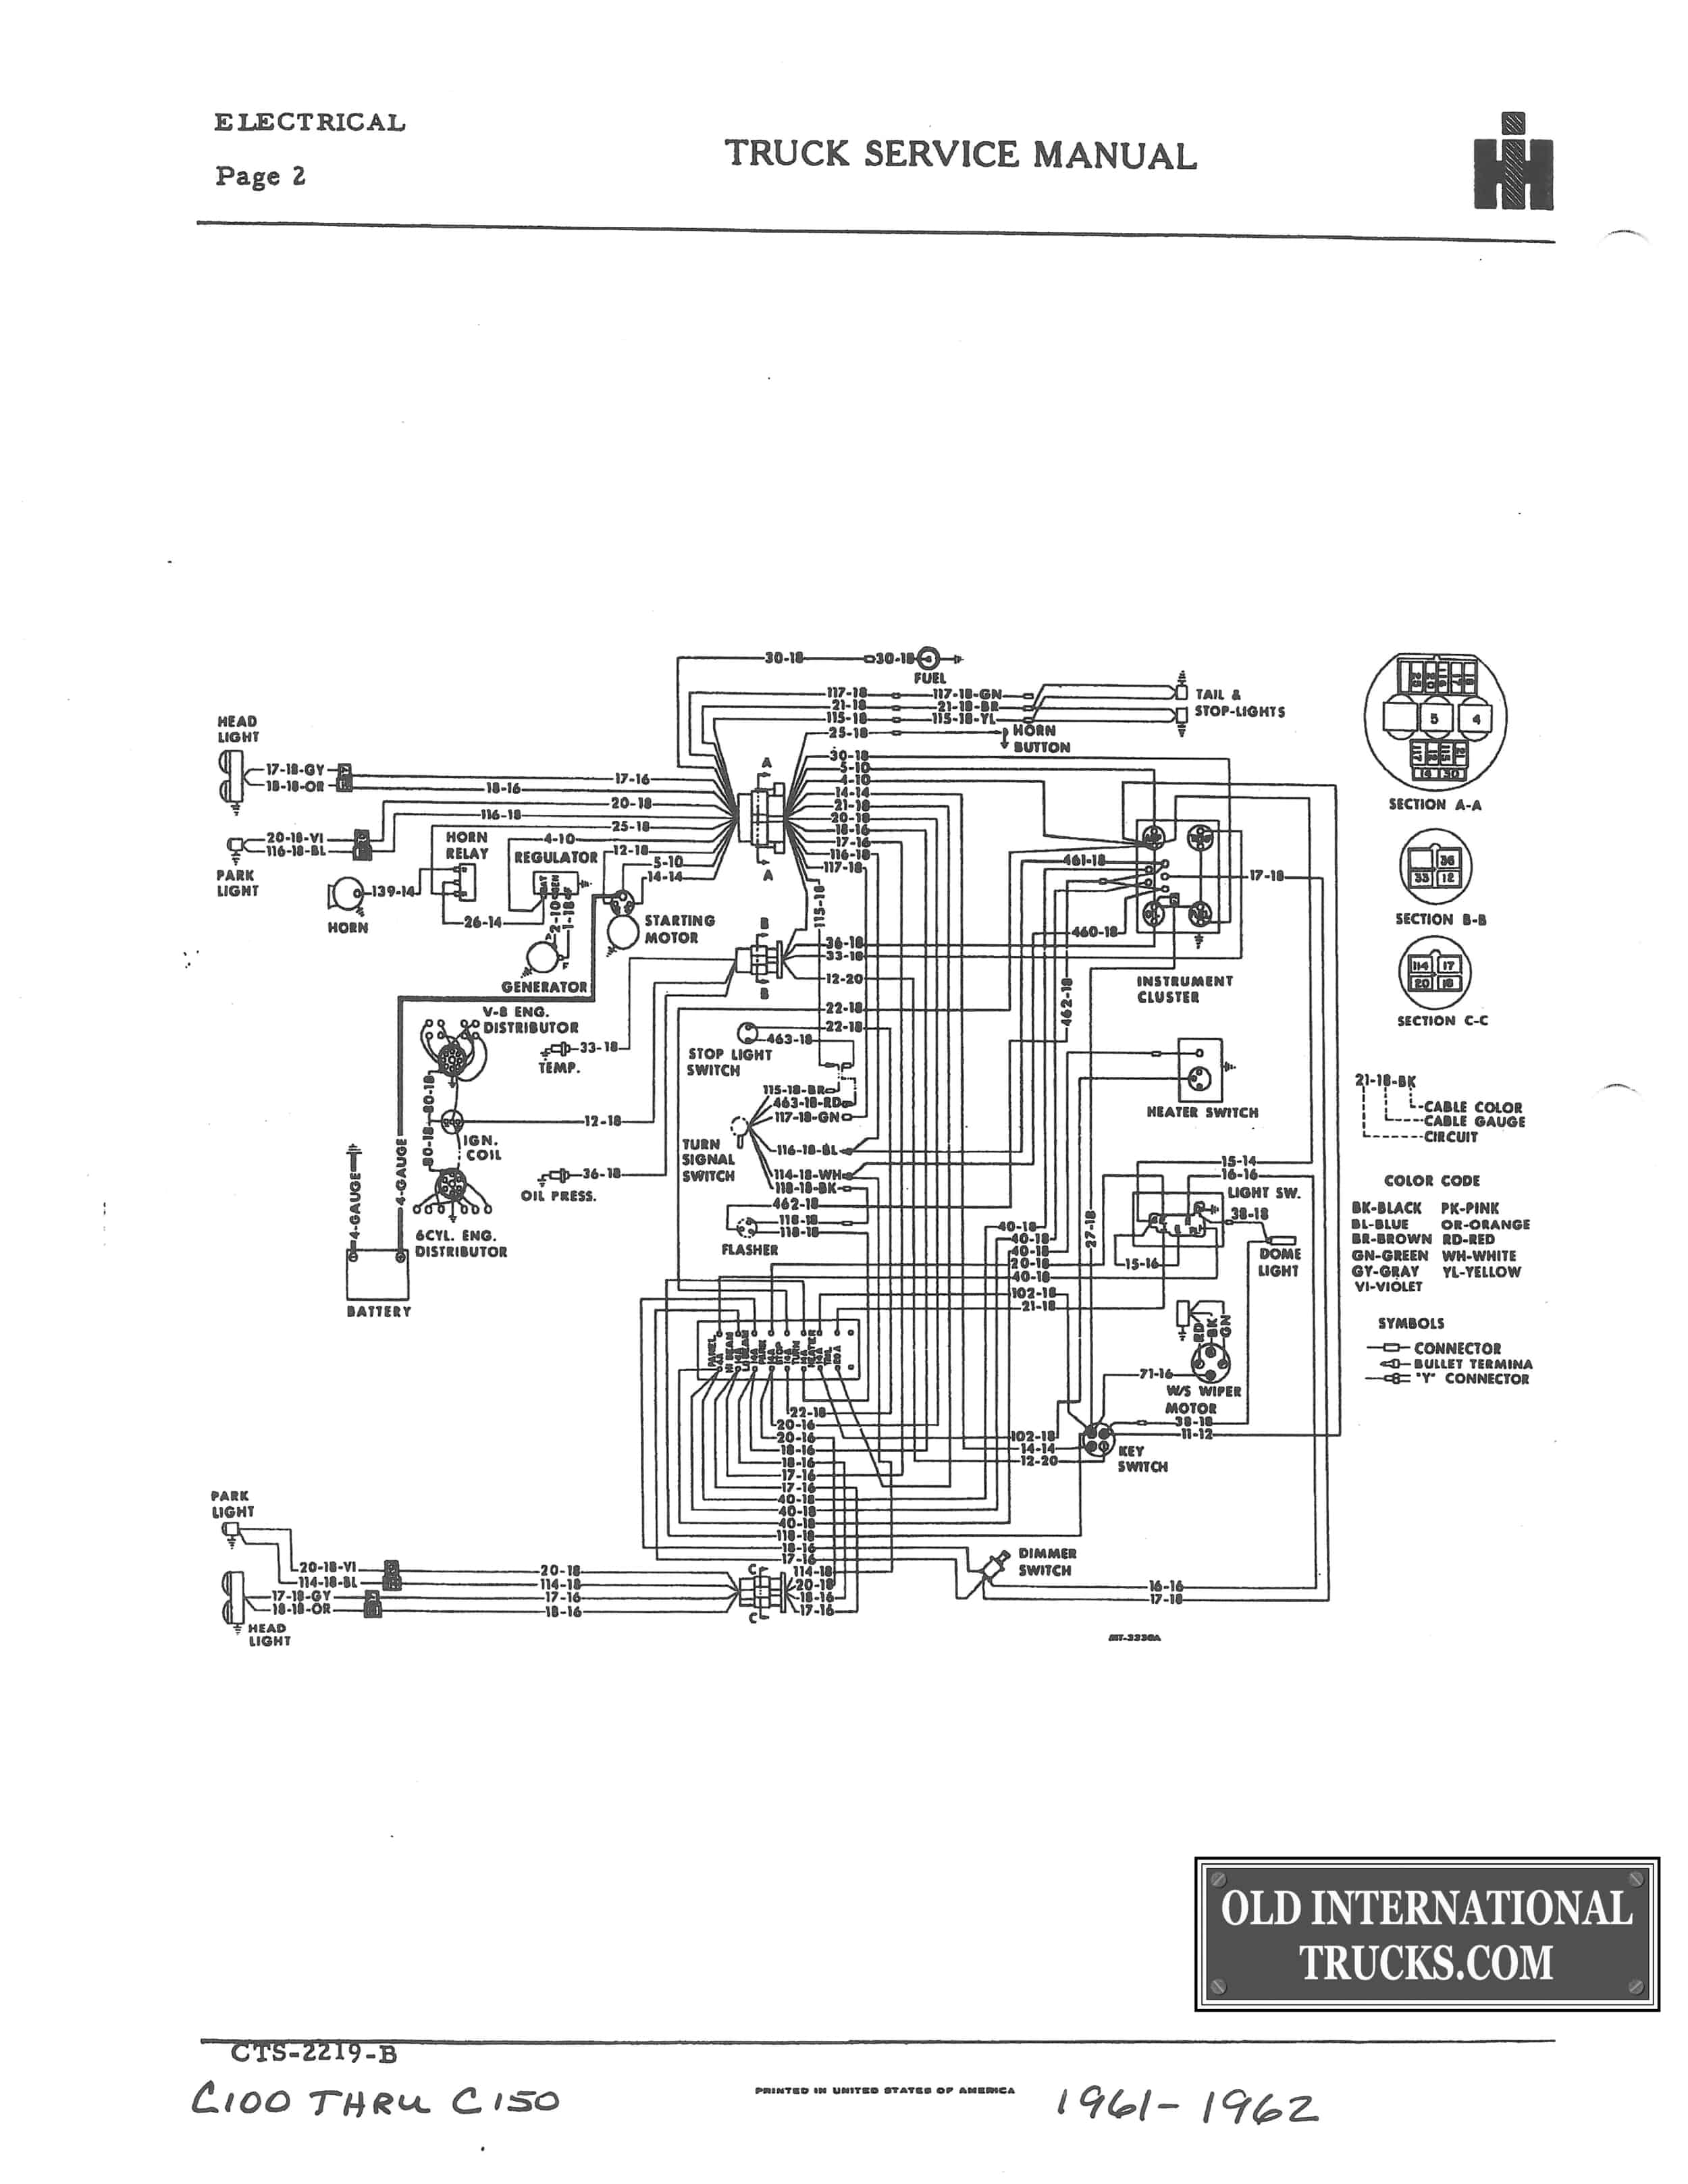 International Truck Wiring Diagram from oldinternationaltrucks.com